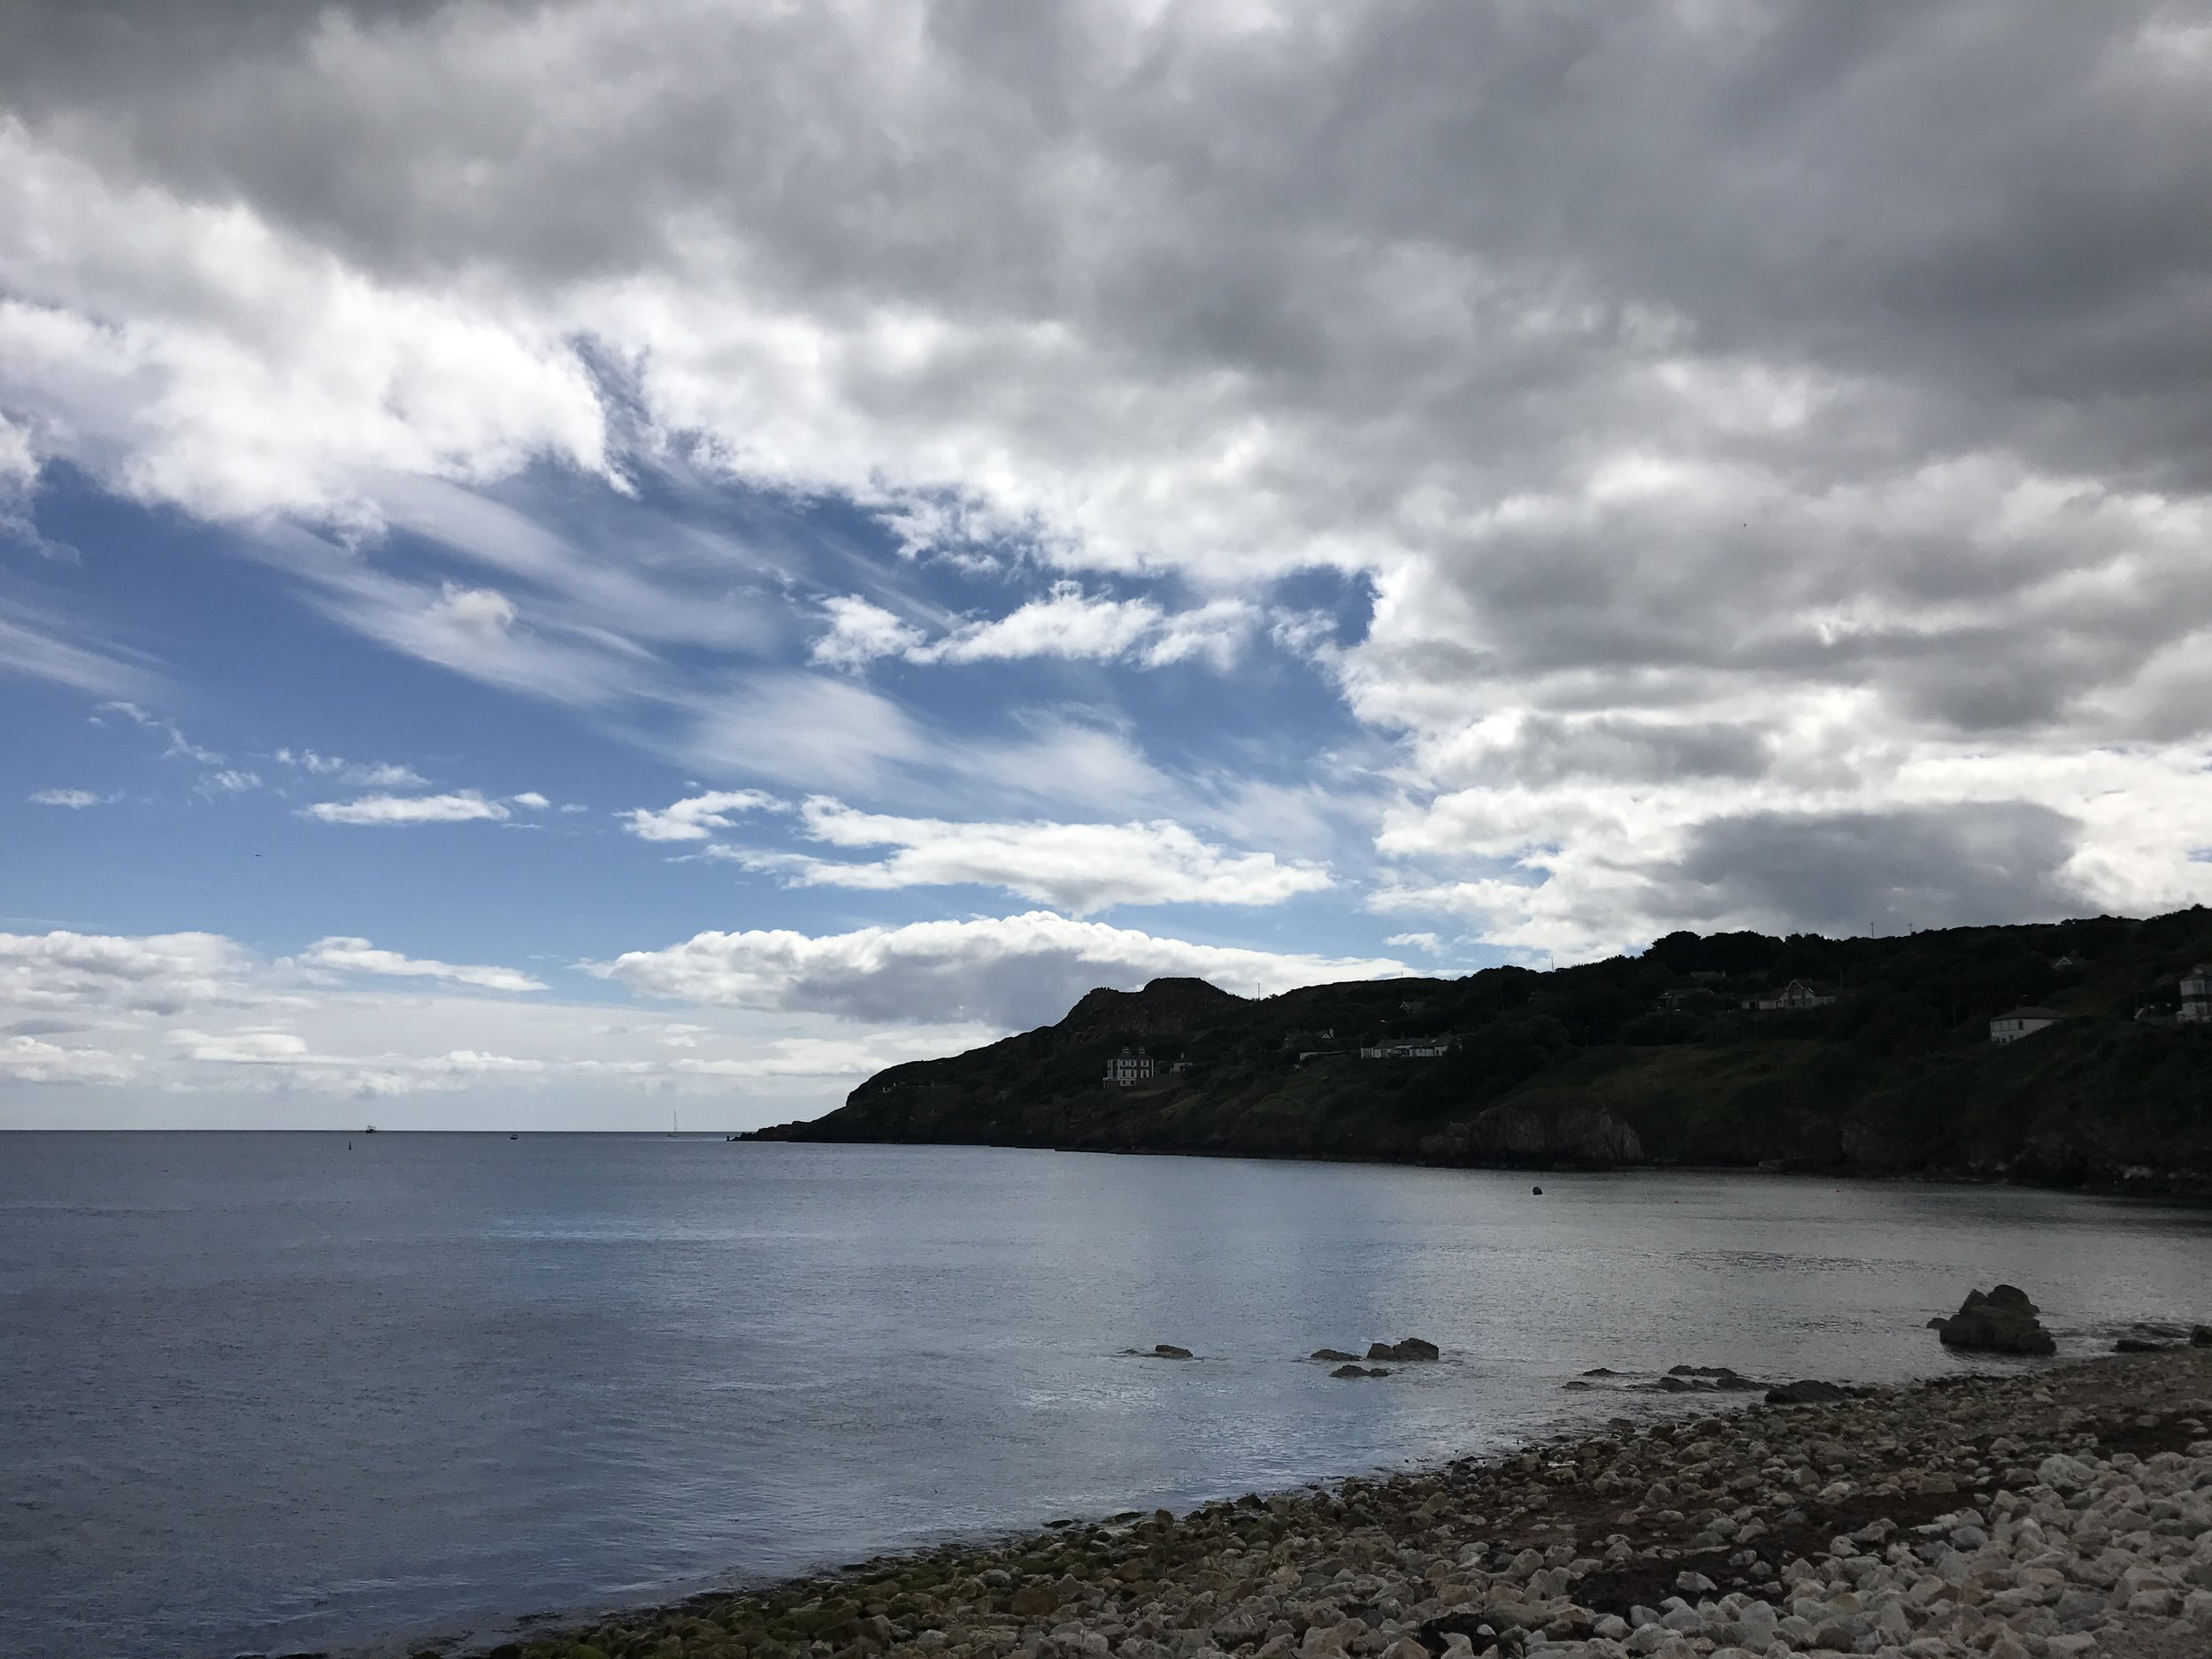 One of my adventures this year took me to the beautiful village of Howth in Ireland.